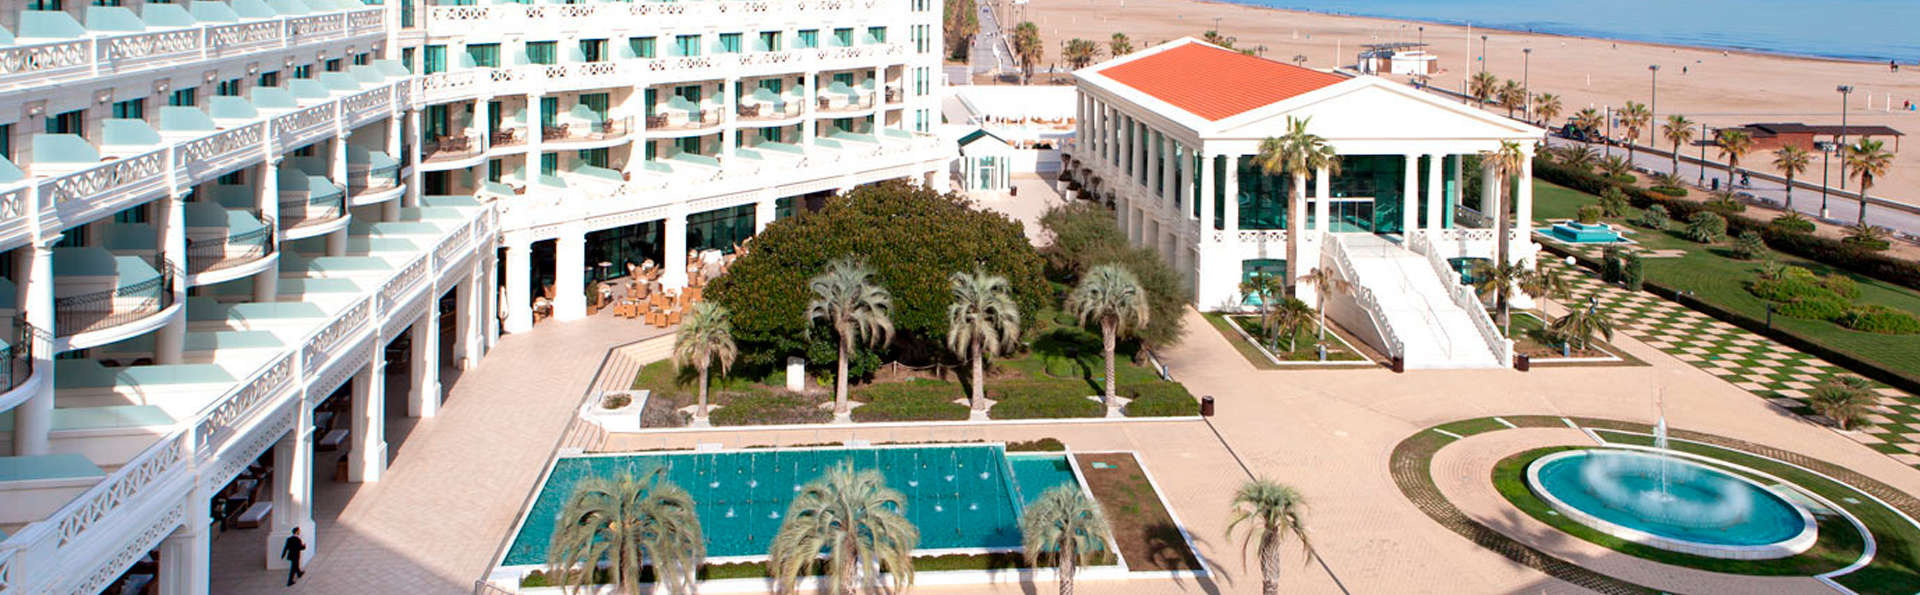 Hotel Las Arenas Balneario Resort - edit_vista.jpg